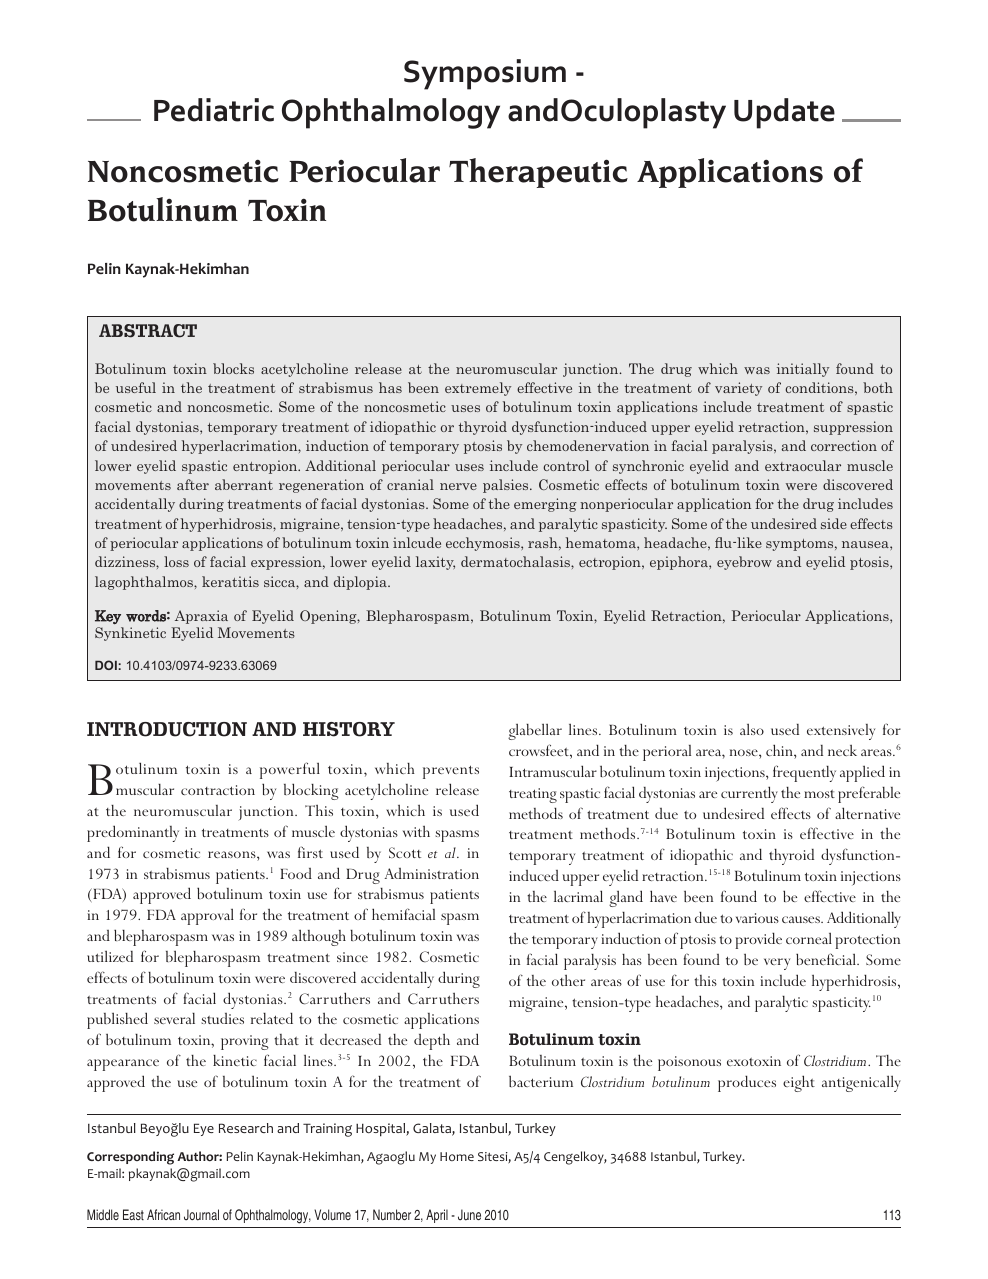 Noncosmetic periocular therapeutic applications of botulinum